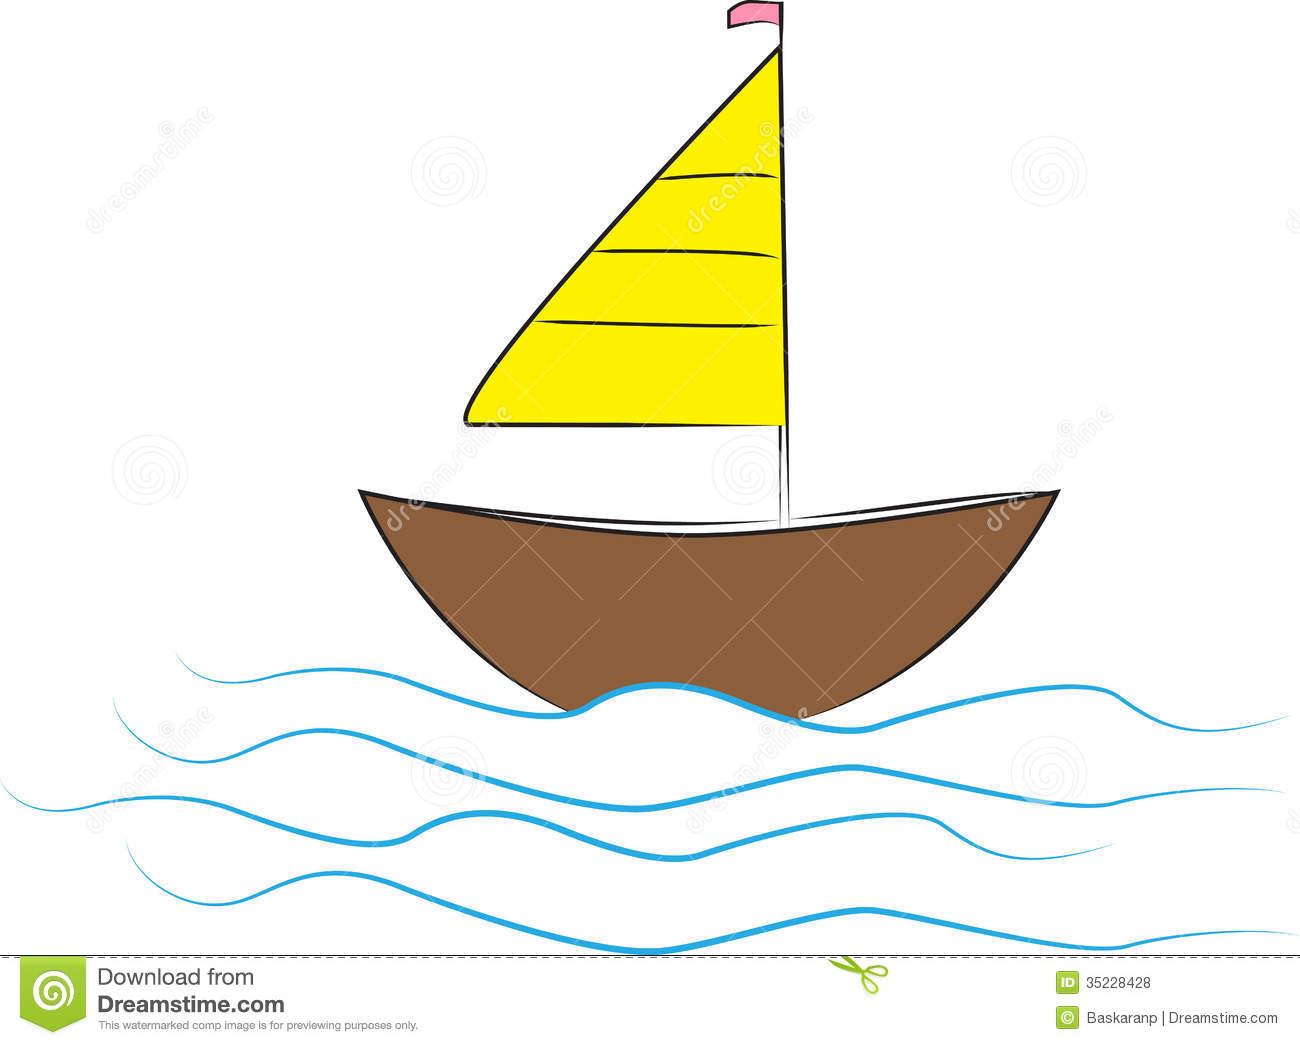 Illustration of boat design isolated on white background.